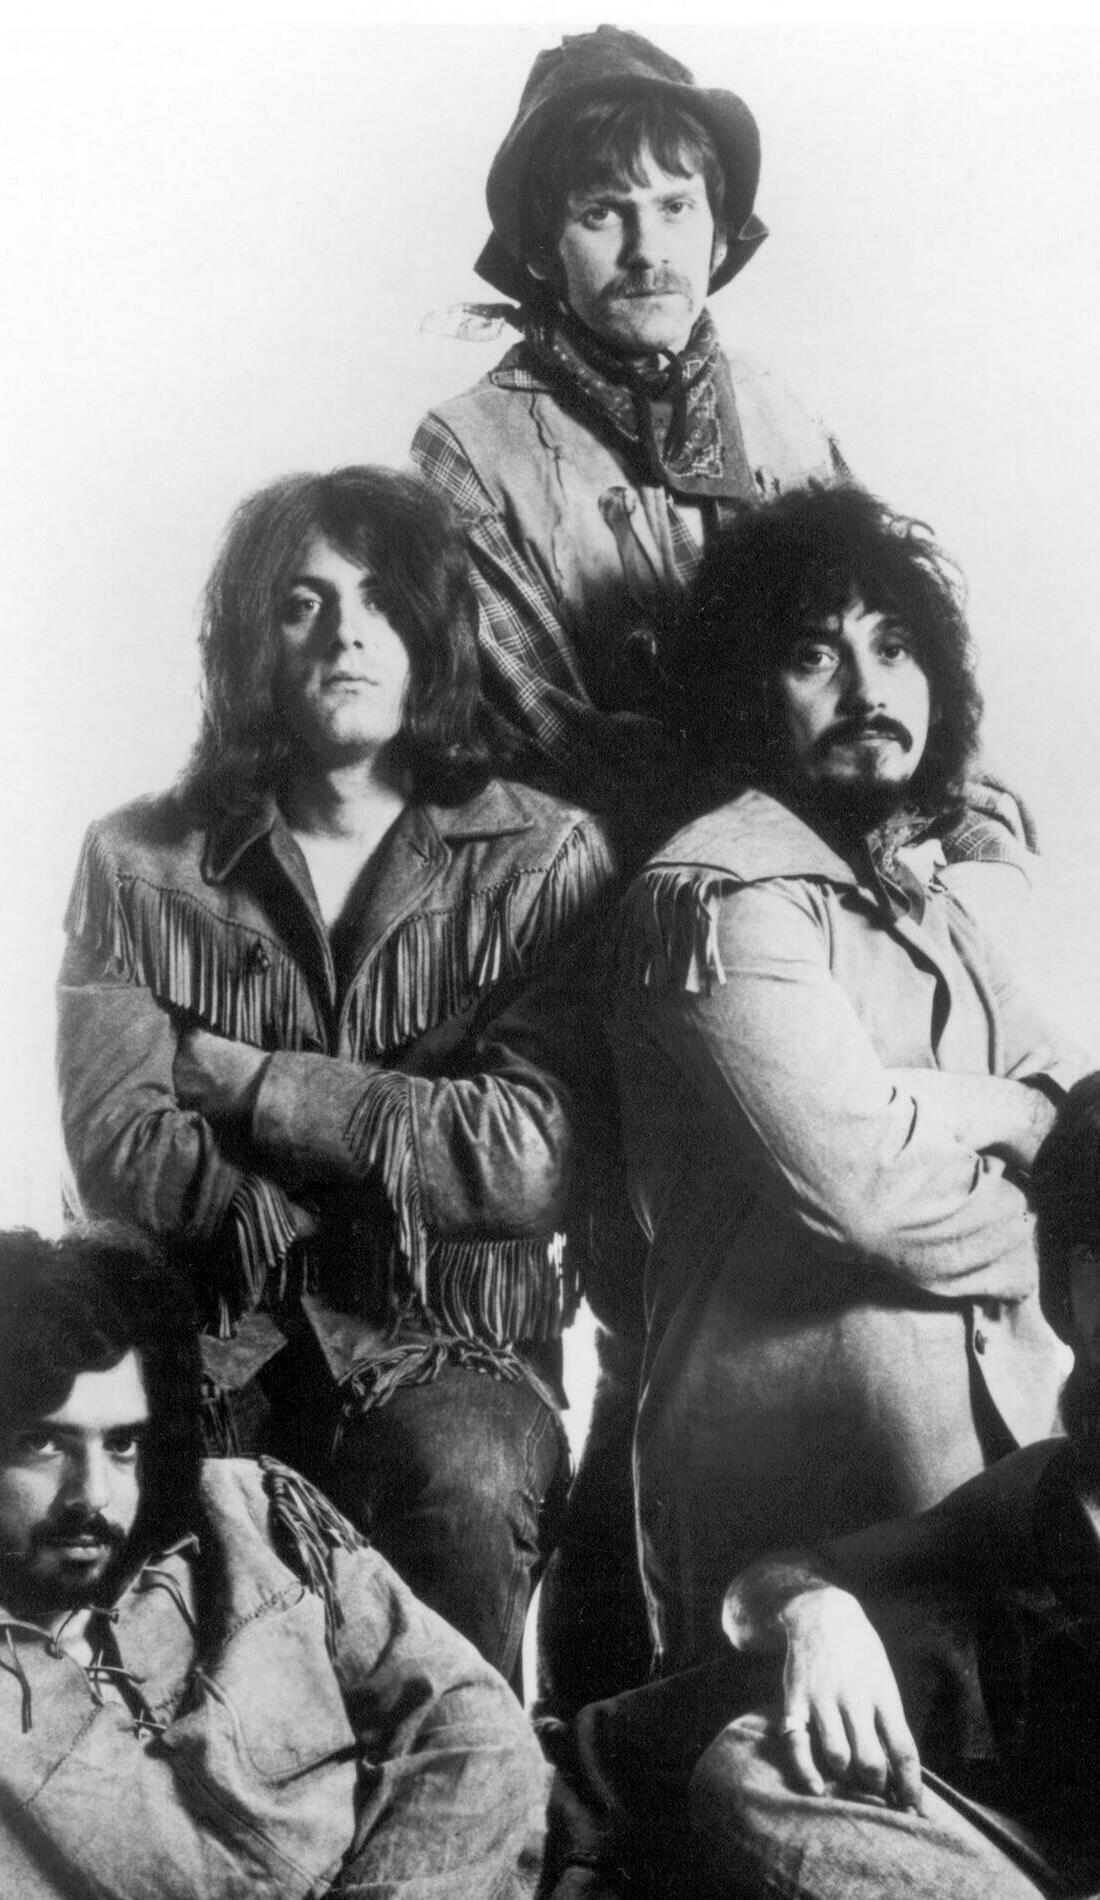 A Tommy James and the Shondells live event